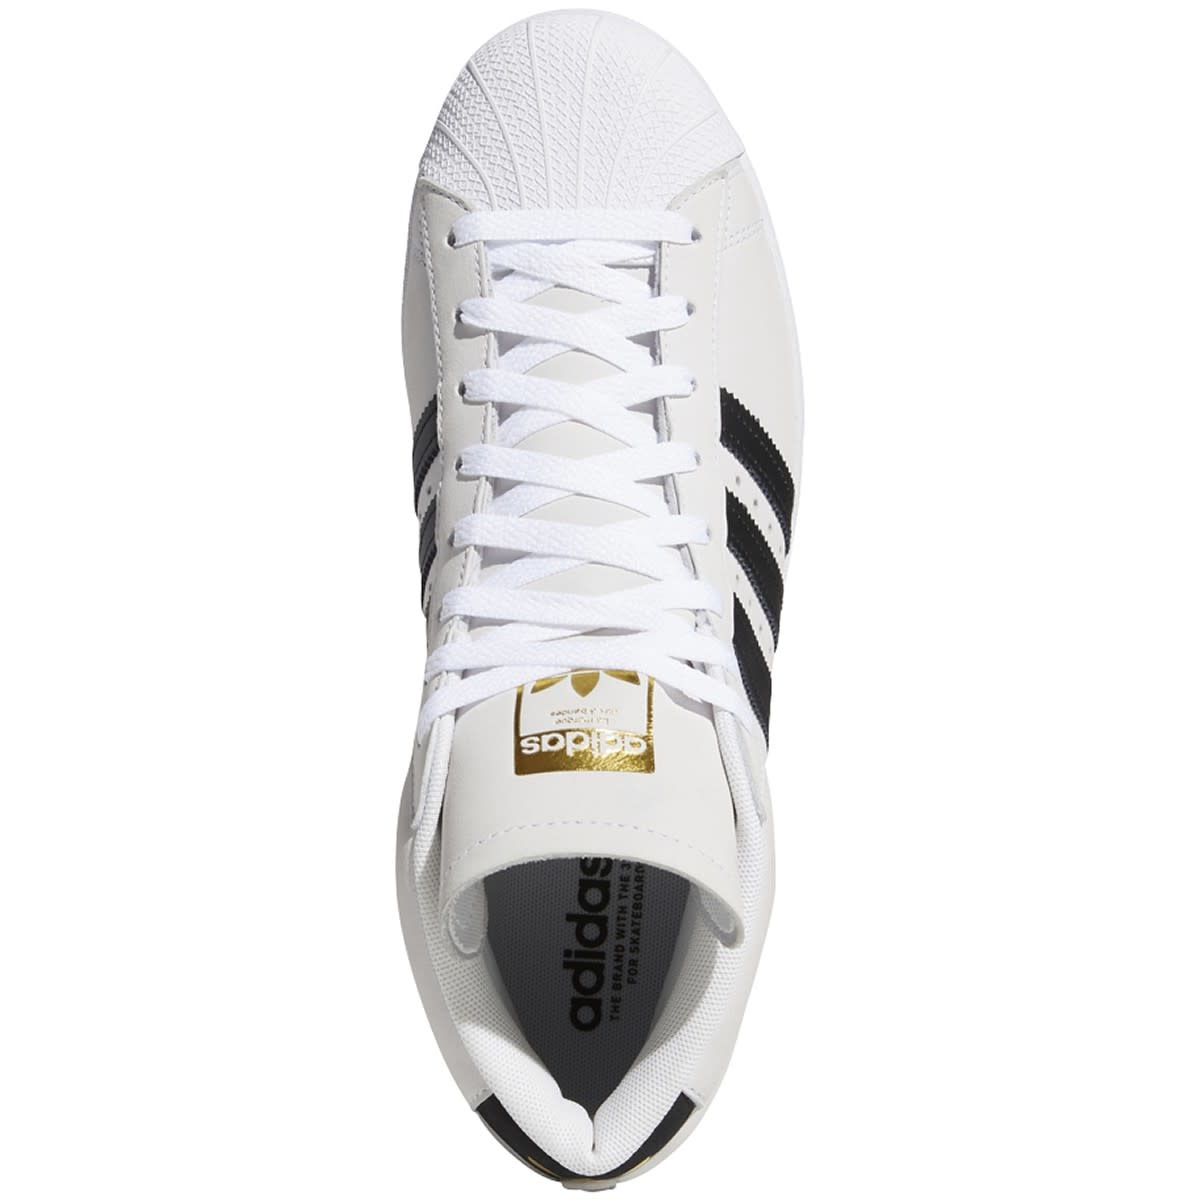 Adidas Adidas Pro Model - White/Black/Gold Metallic